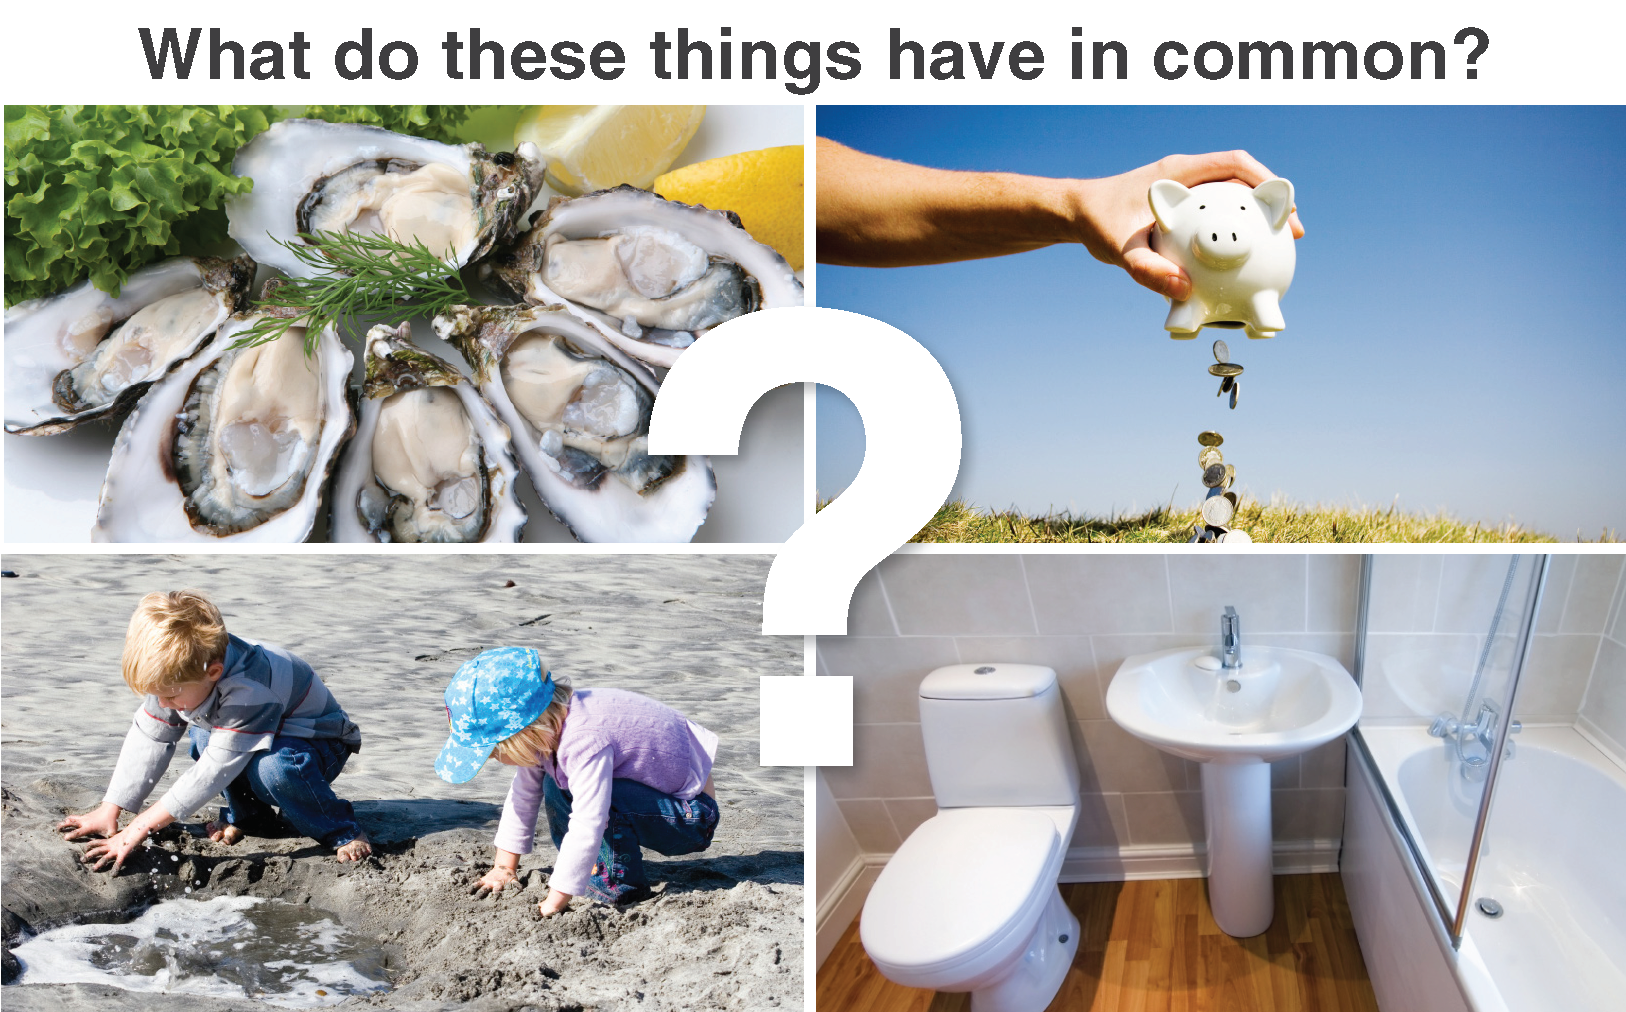 Four pictures of shellfish, a piggybank, children playing in the beach and a bathroom